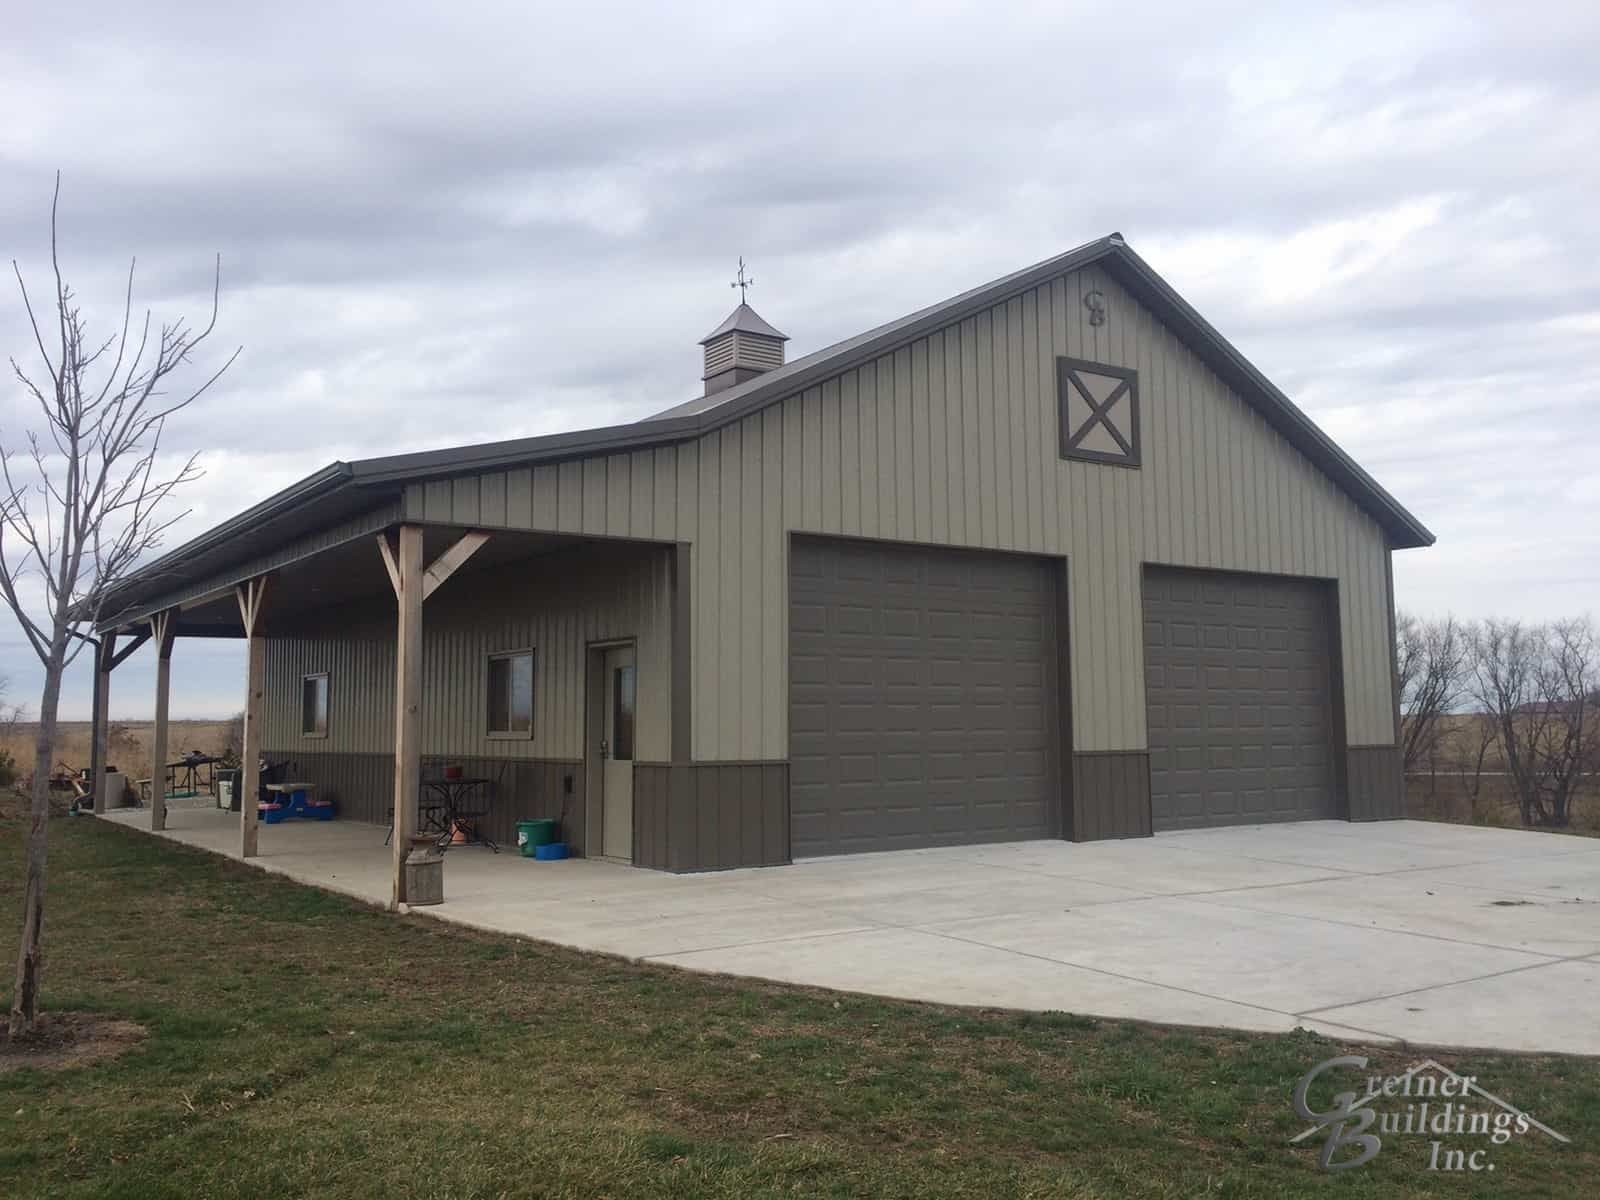 30 Wide X 40 Long X 12 Tall Metal Garage Workshop With A Side Porch Area 12x40x9 Gb 3516 Jak Metal Garage Buildings Barn House Plans Building A Pole Barn